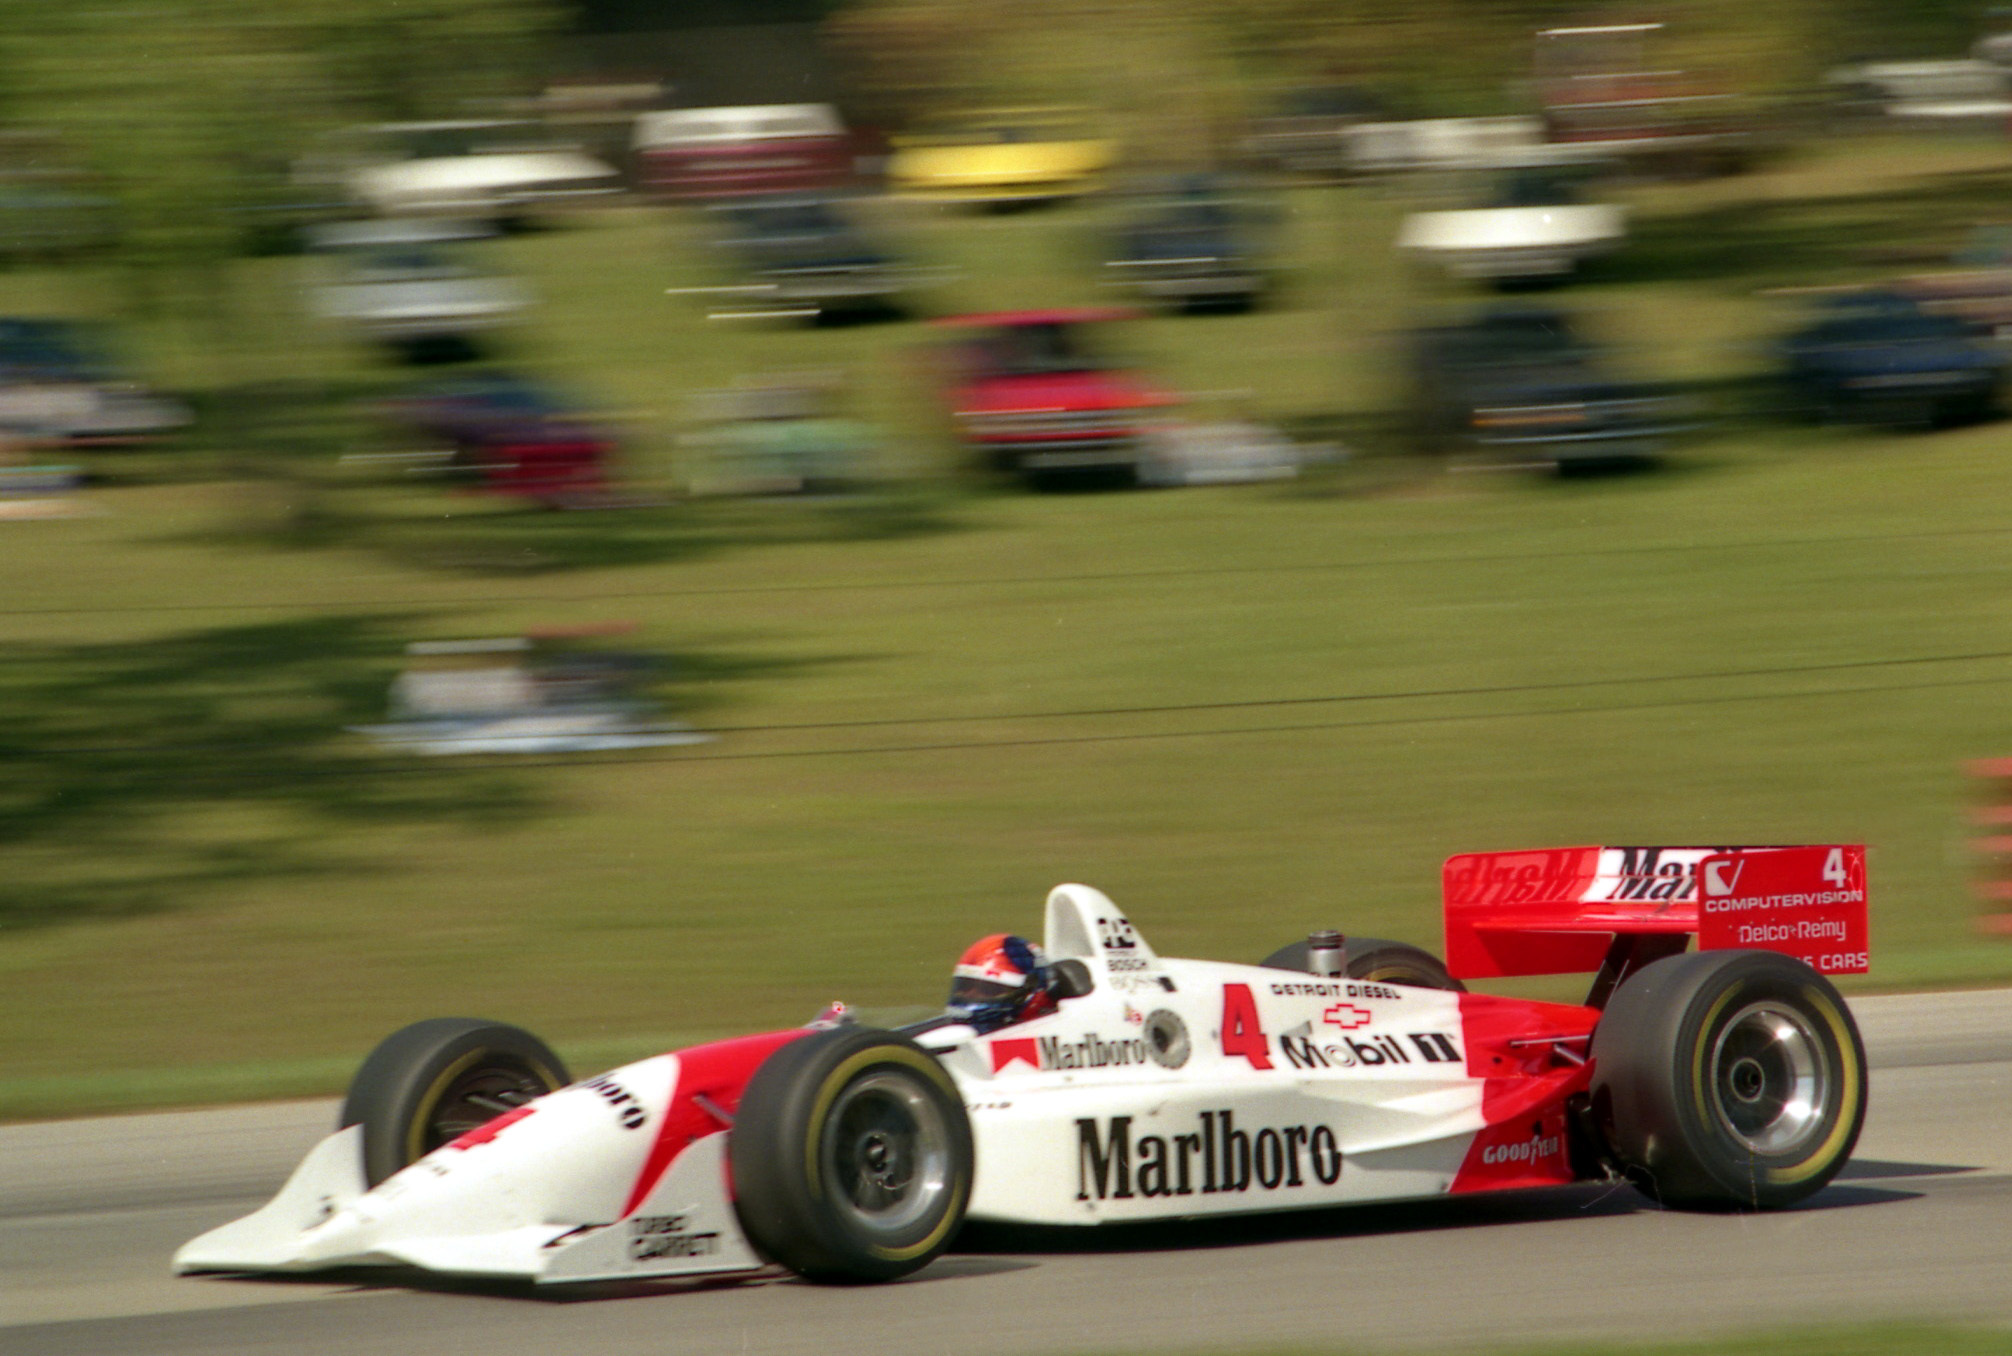 cars IndyCar races racing HD Wallpaper